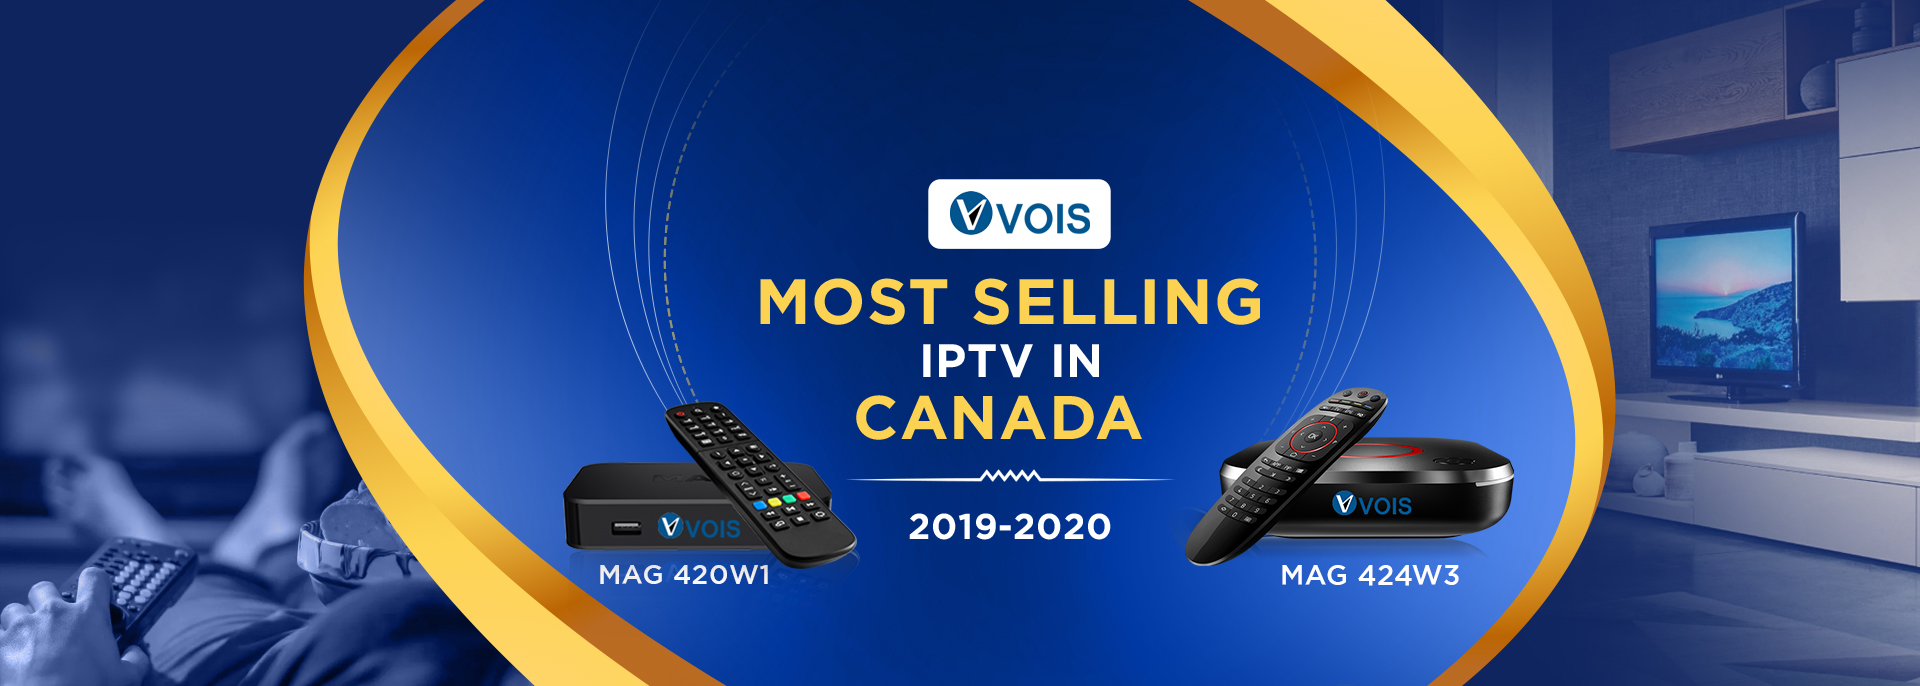 Most selling iptv in Canada